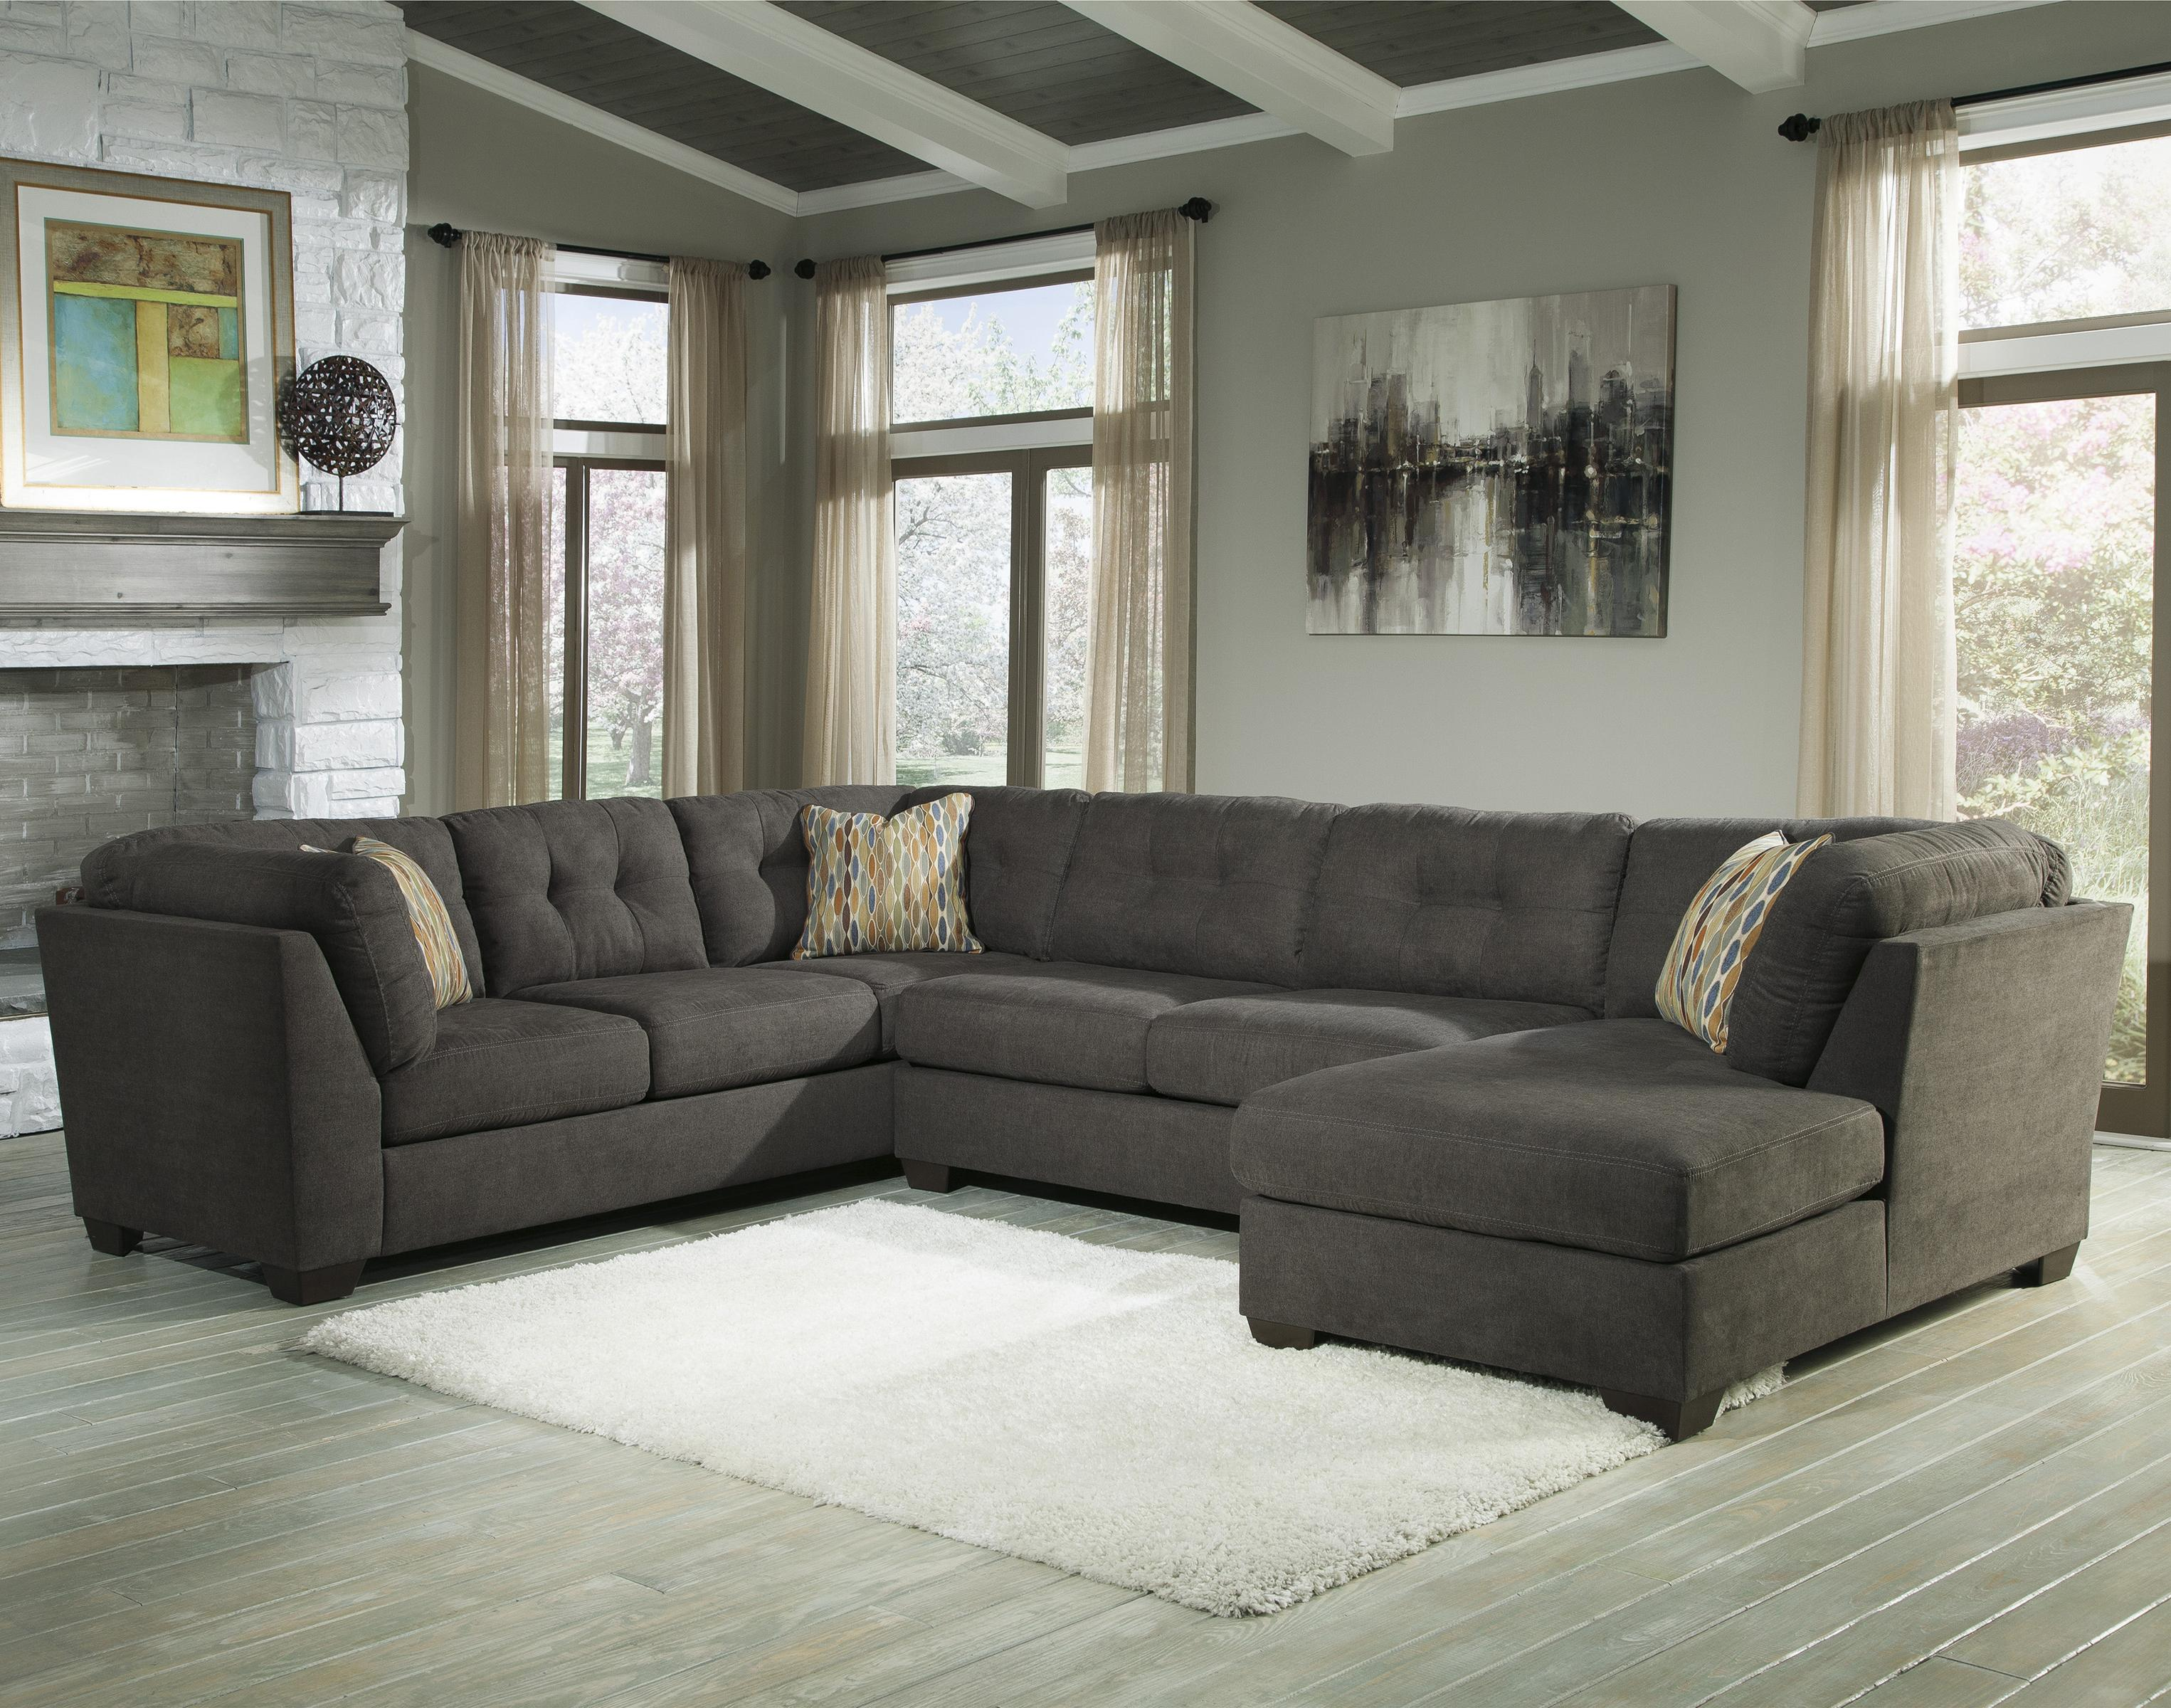 Benchcraft Delta City - Steel 3-Piece Modular Sectional with Right Chaise - Item Number: 1970038+34+17